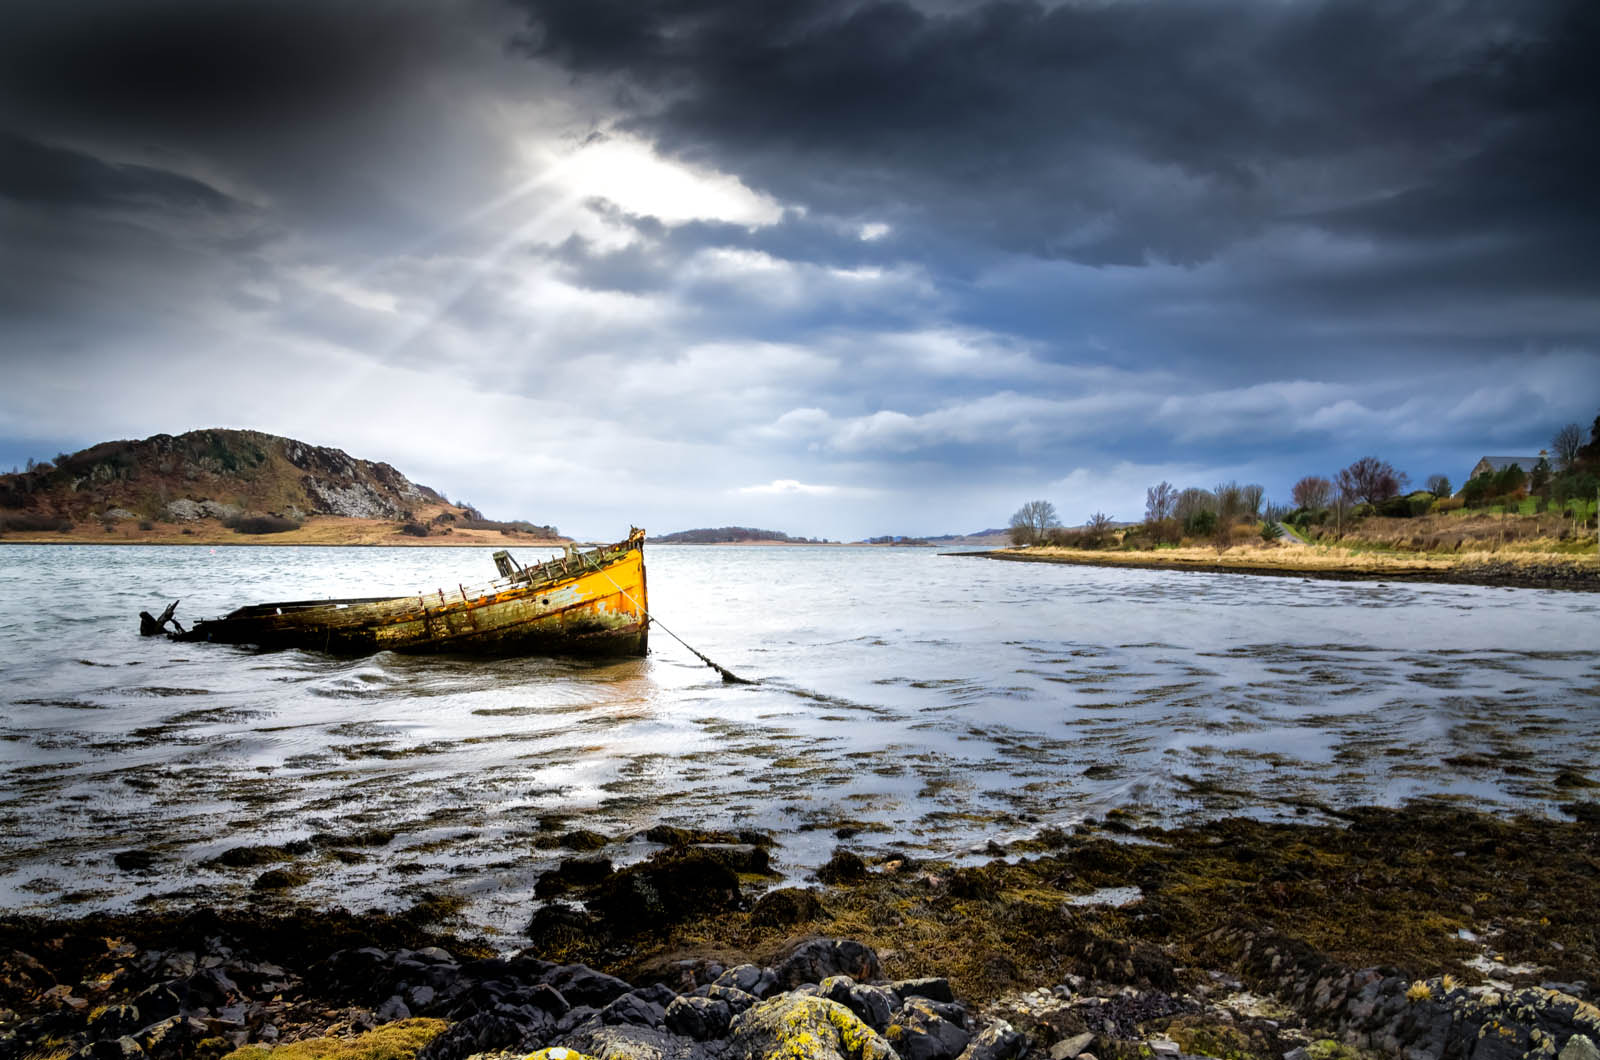 Photograph West Highland Shipwreck by John C. on 500px